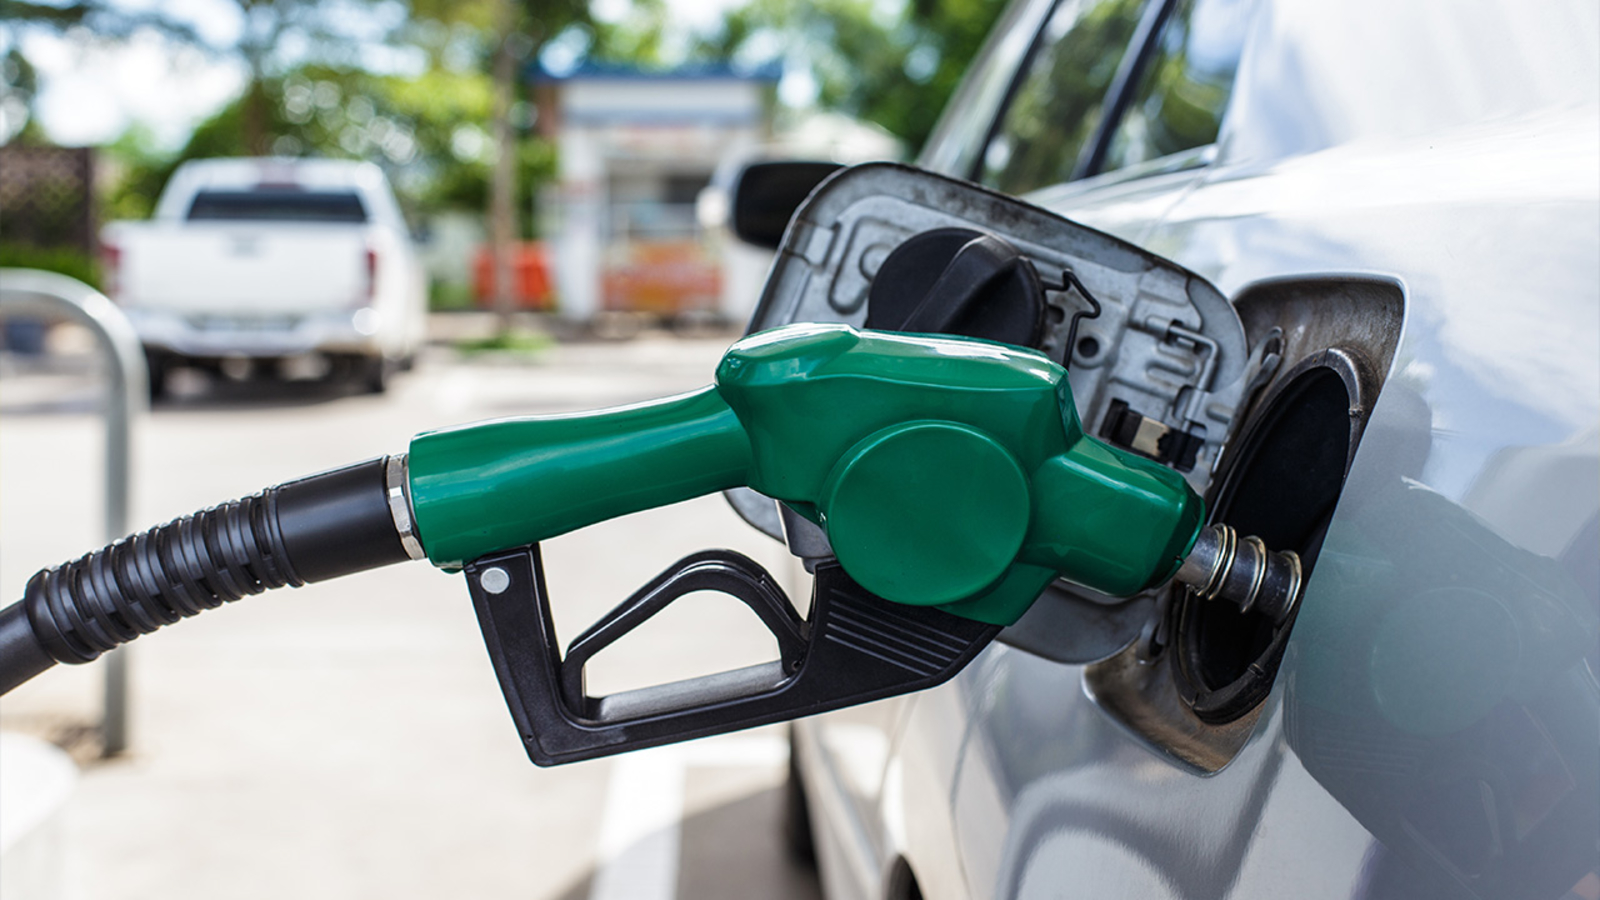 Gas prices in Los Angeles: Average LA County gas price rises for 47th time in 48 days - KABC-TV